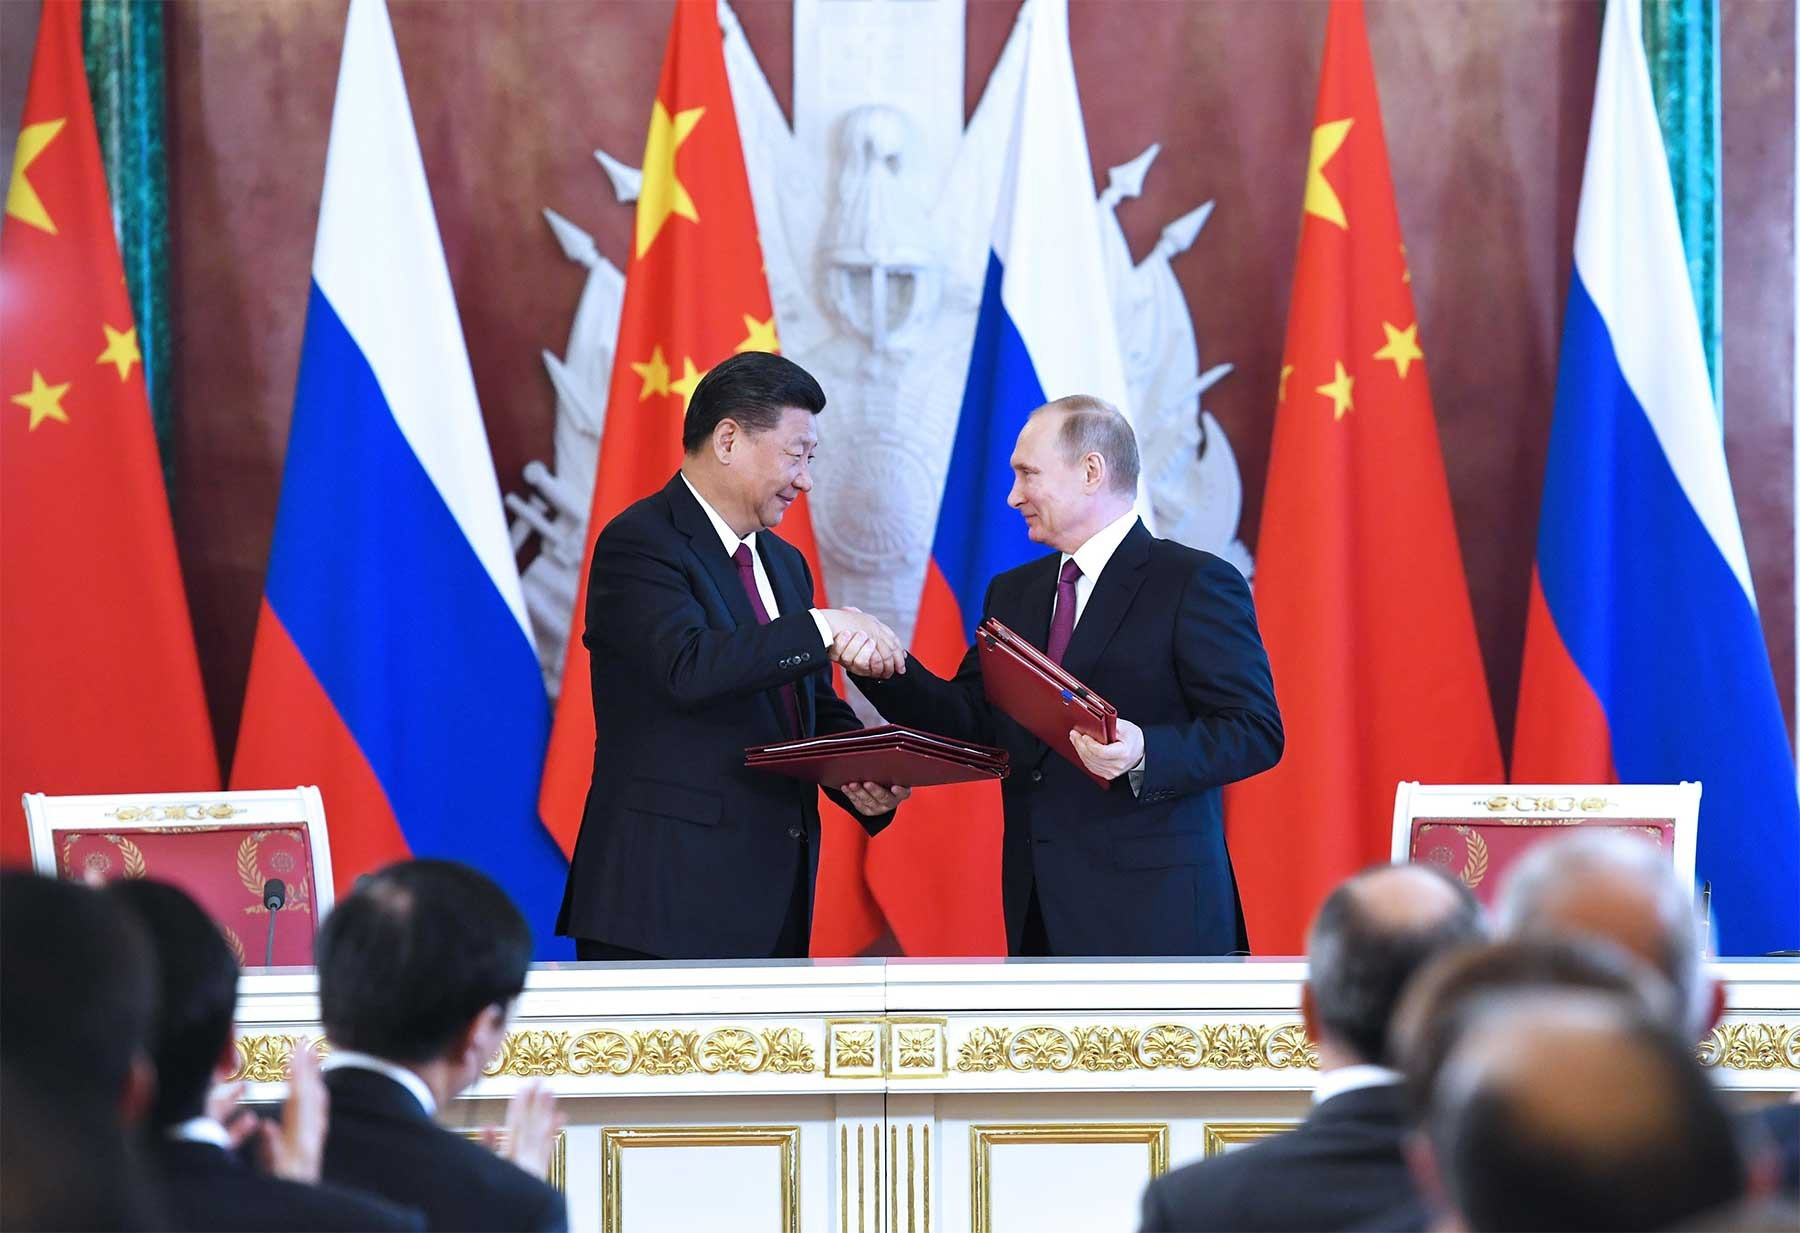 US doomed to fail in case of conflict with Russia and China - Global Times